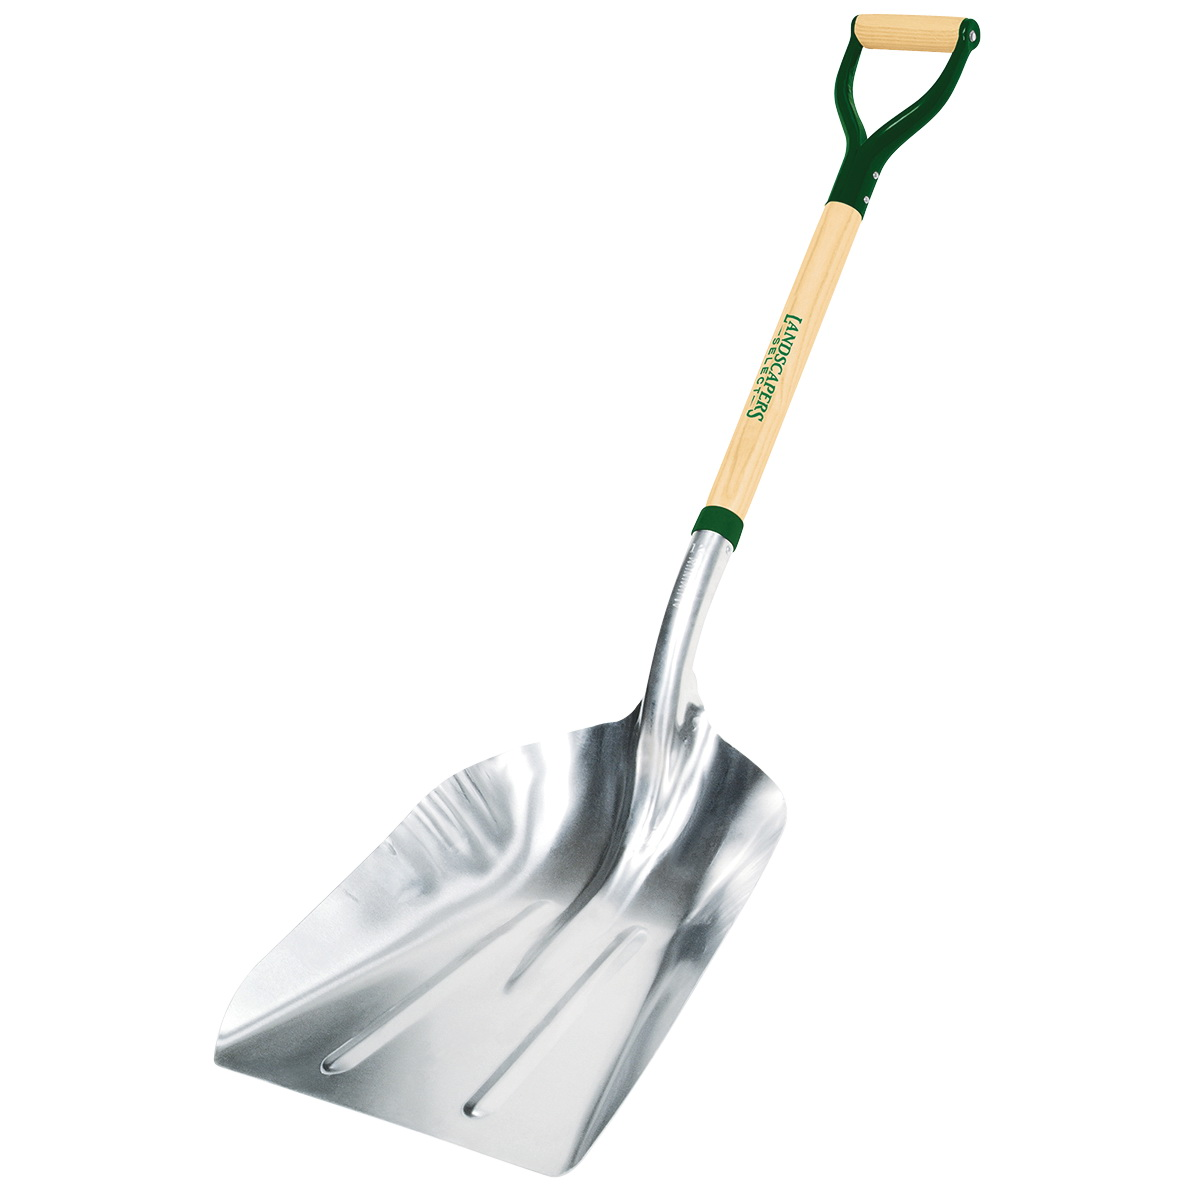 Picture of Landscapers Select 34592 Scoop Shovel, Aluminum Blade, Steel Handle, D-Shaped Handle